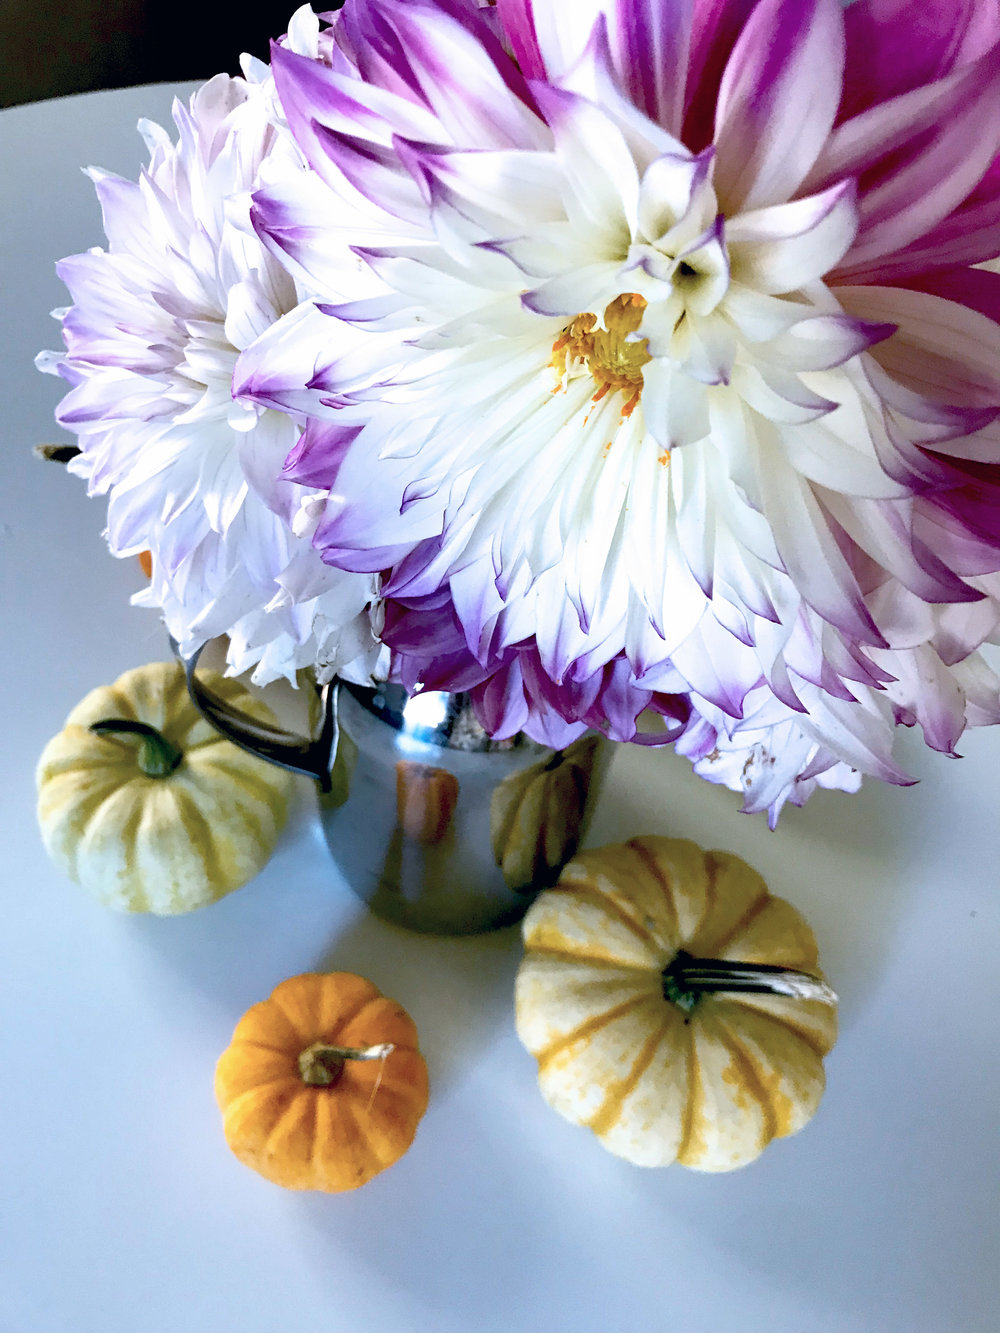 Dahlias from My Garden and Mini Pumpkins from My Mom's Garden on my Dining Room Table